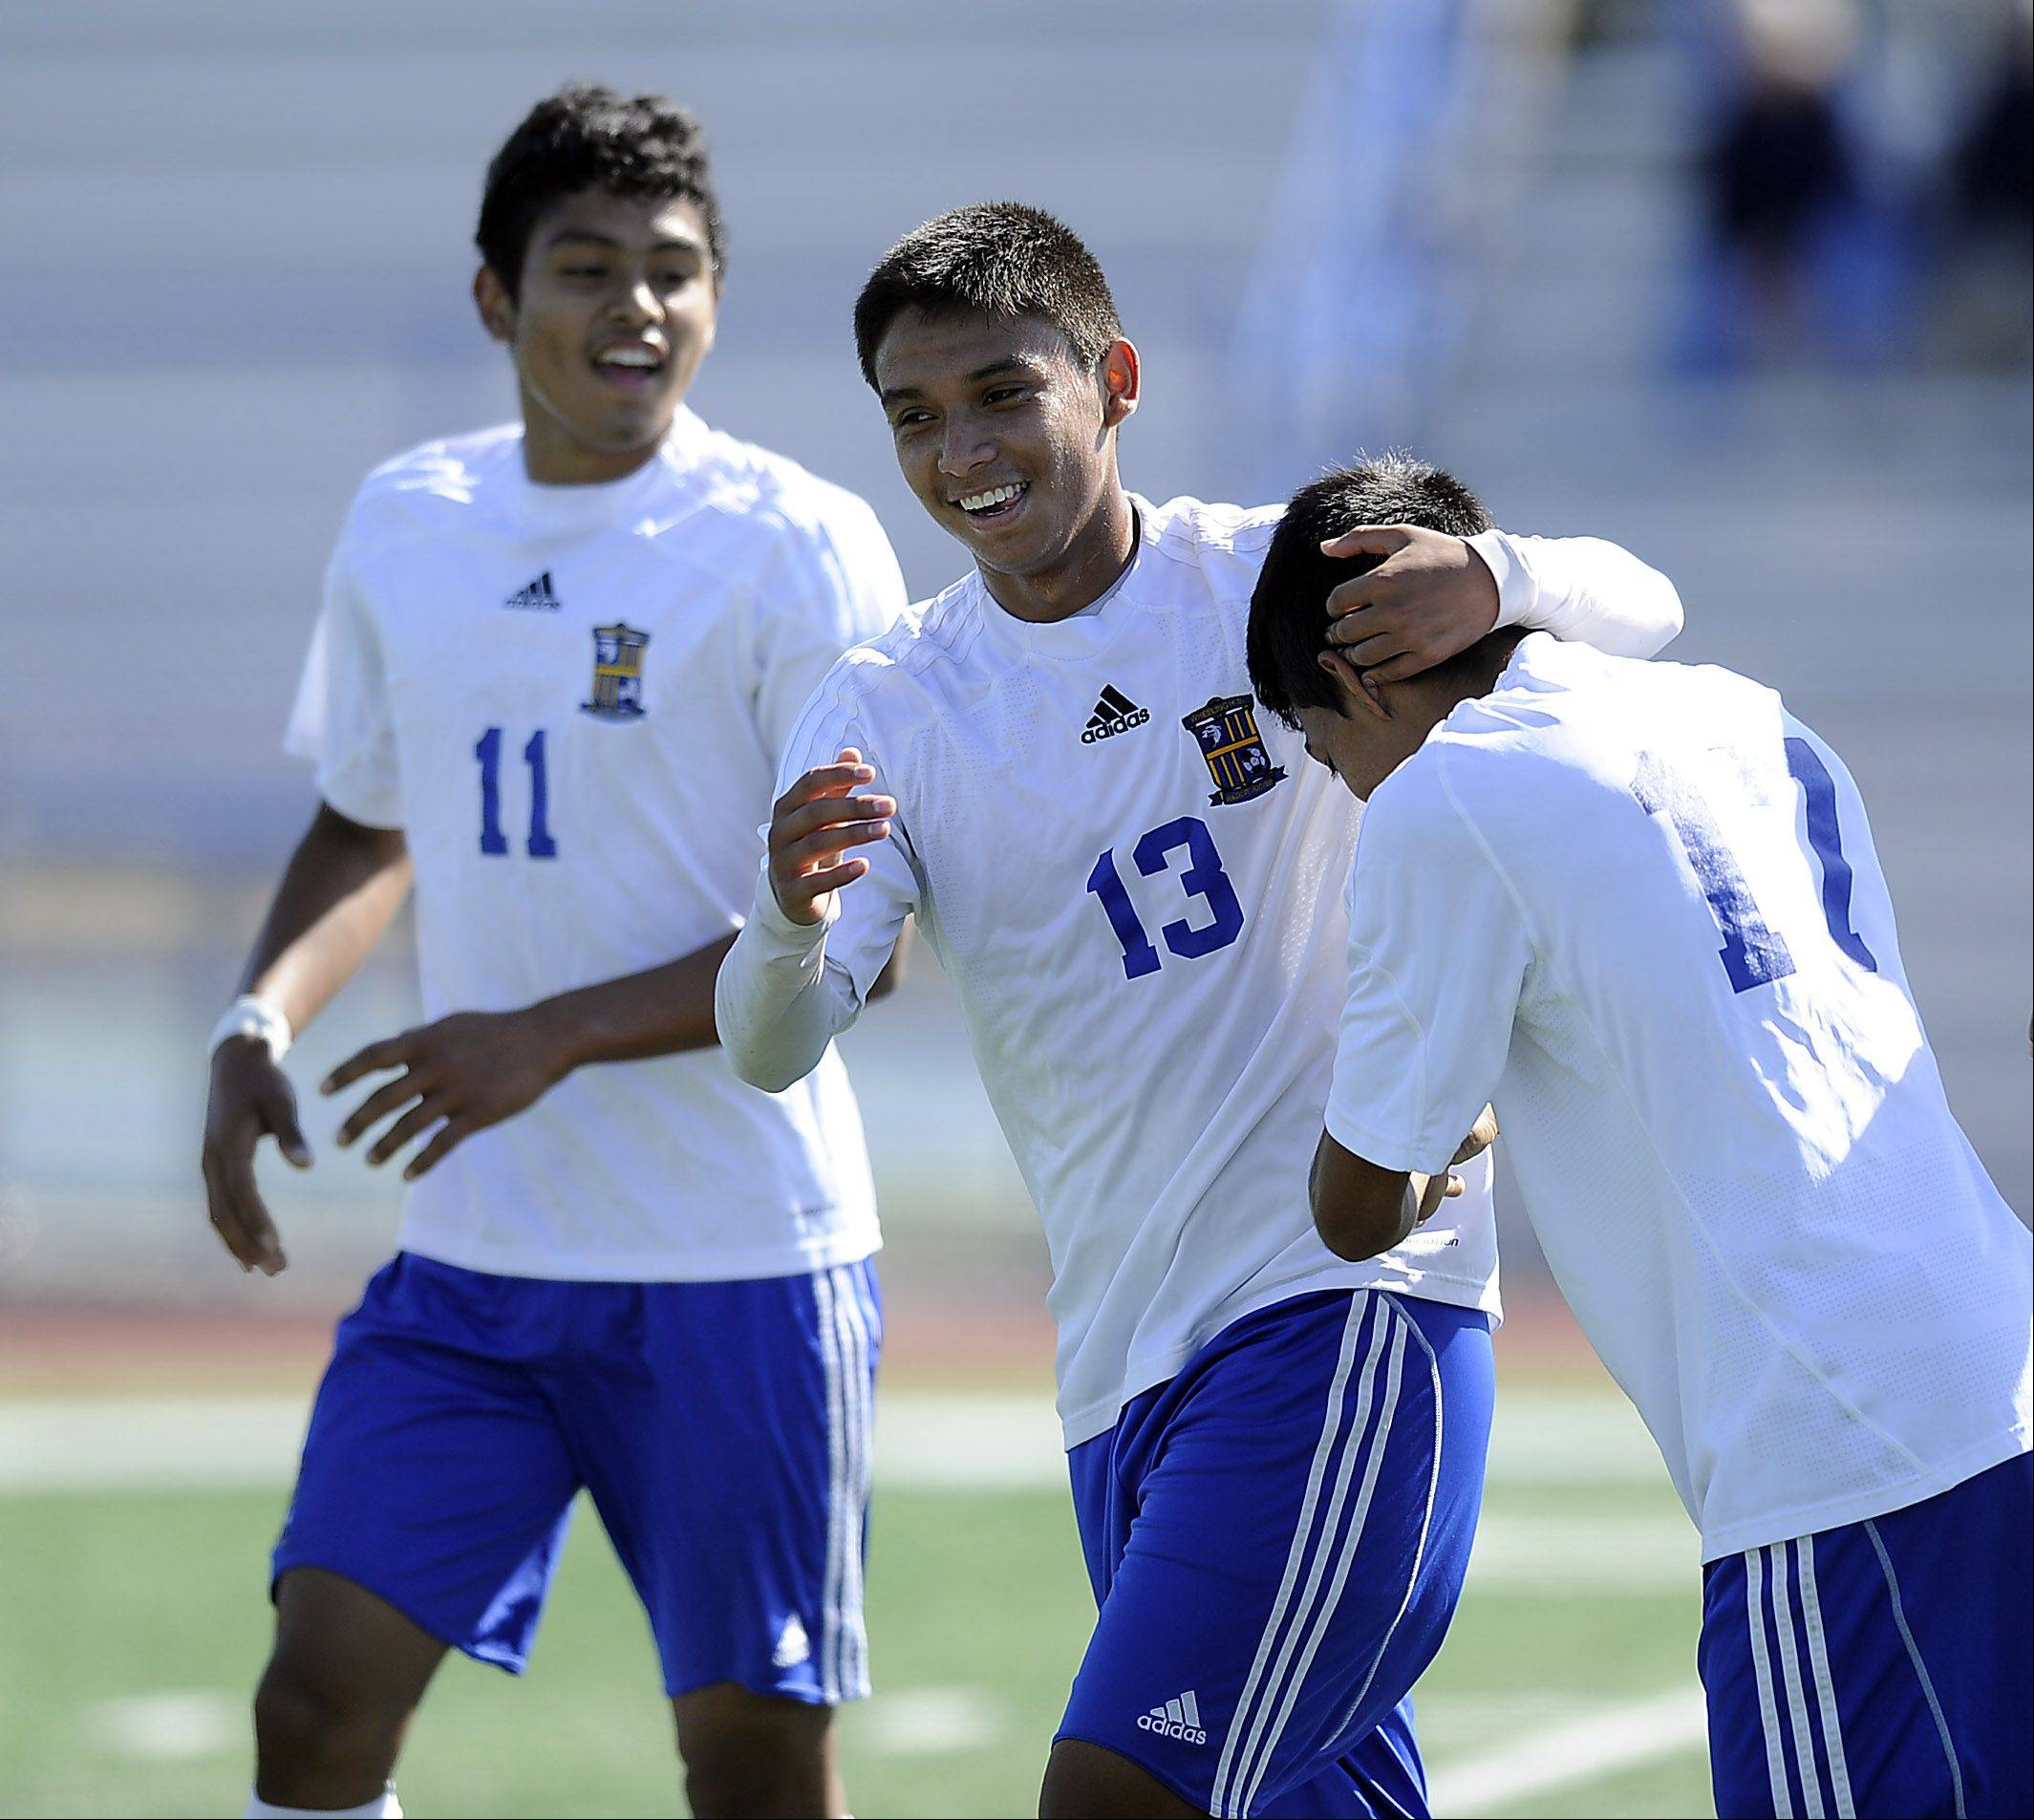 Wheeling's Luis Herrera, Jose Garcia and Fabian Acosta celebrate a goal in the first period at Wheeling on Saturday.